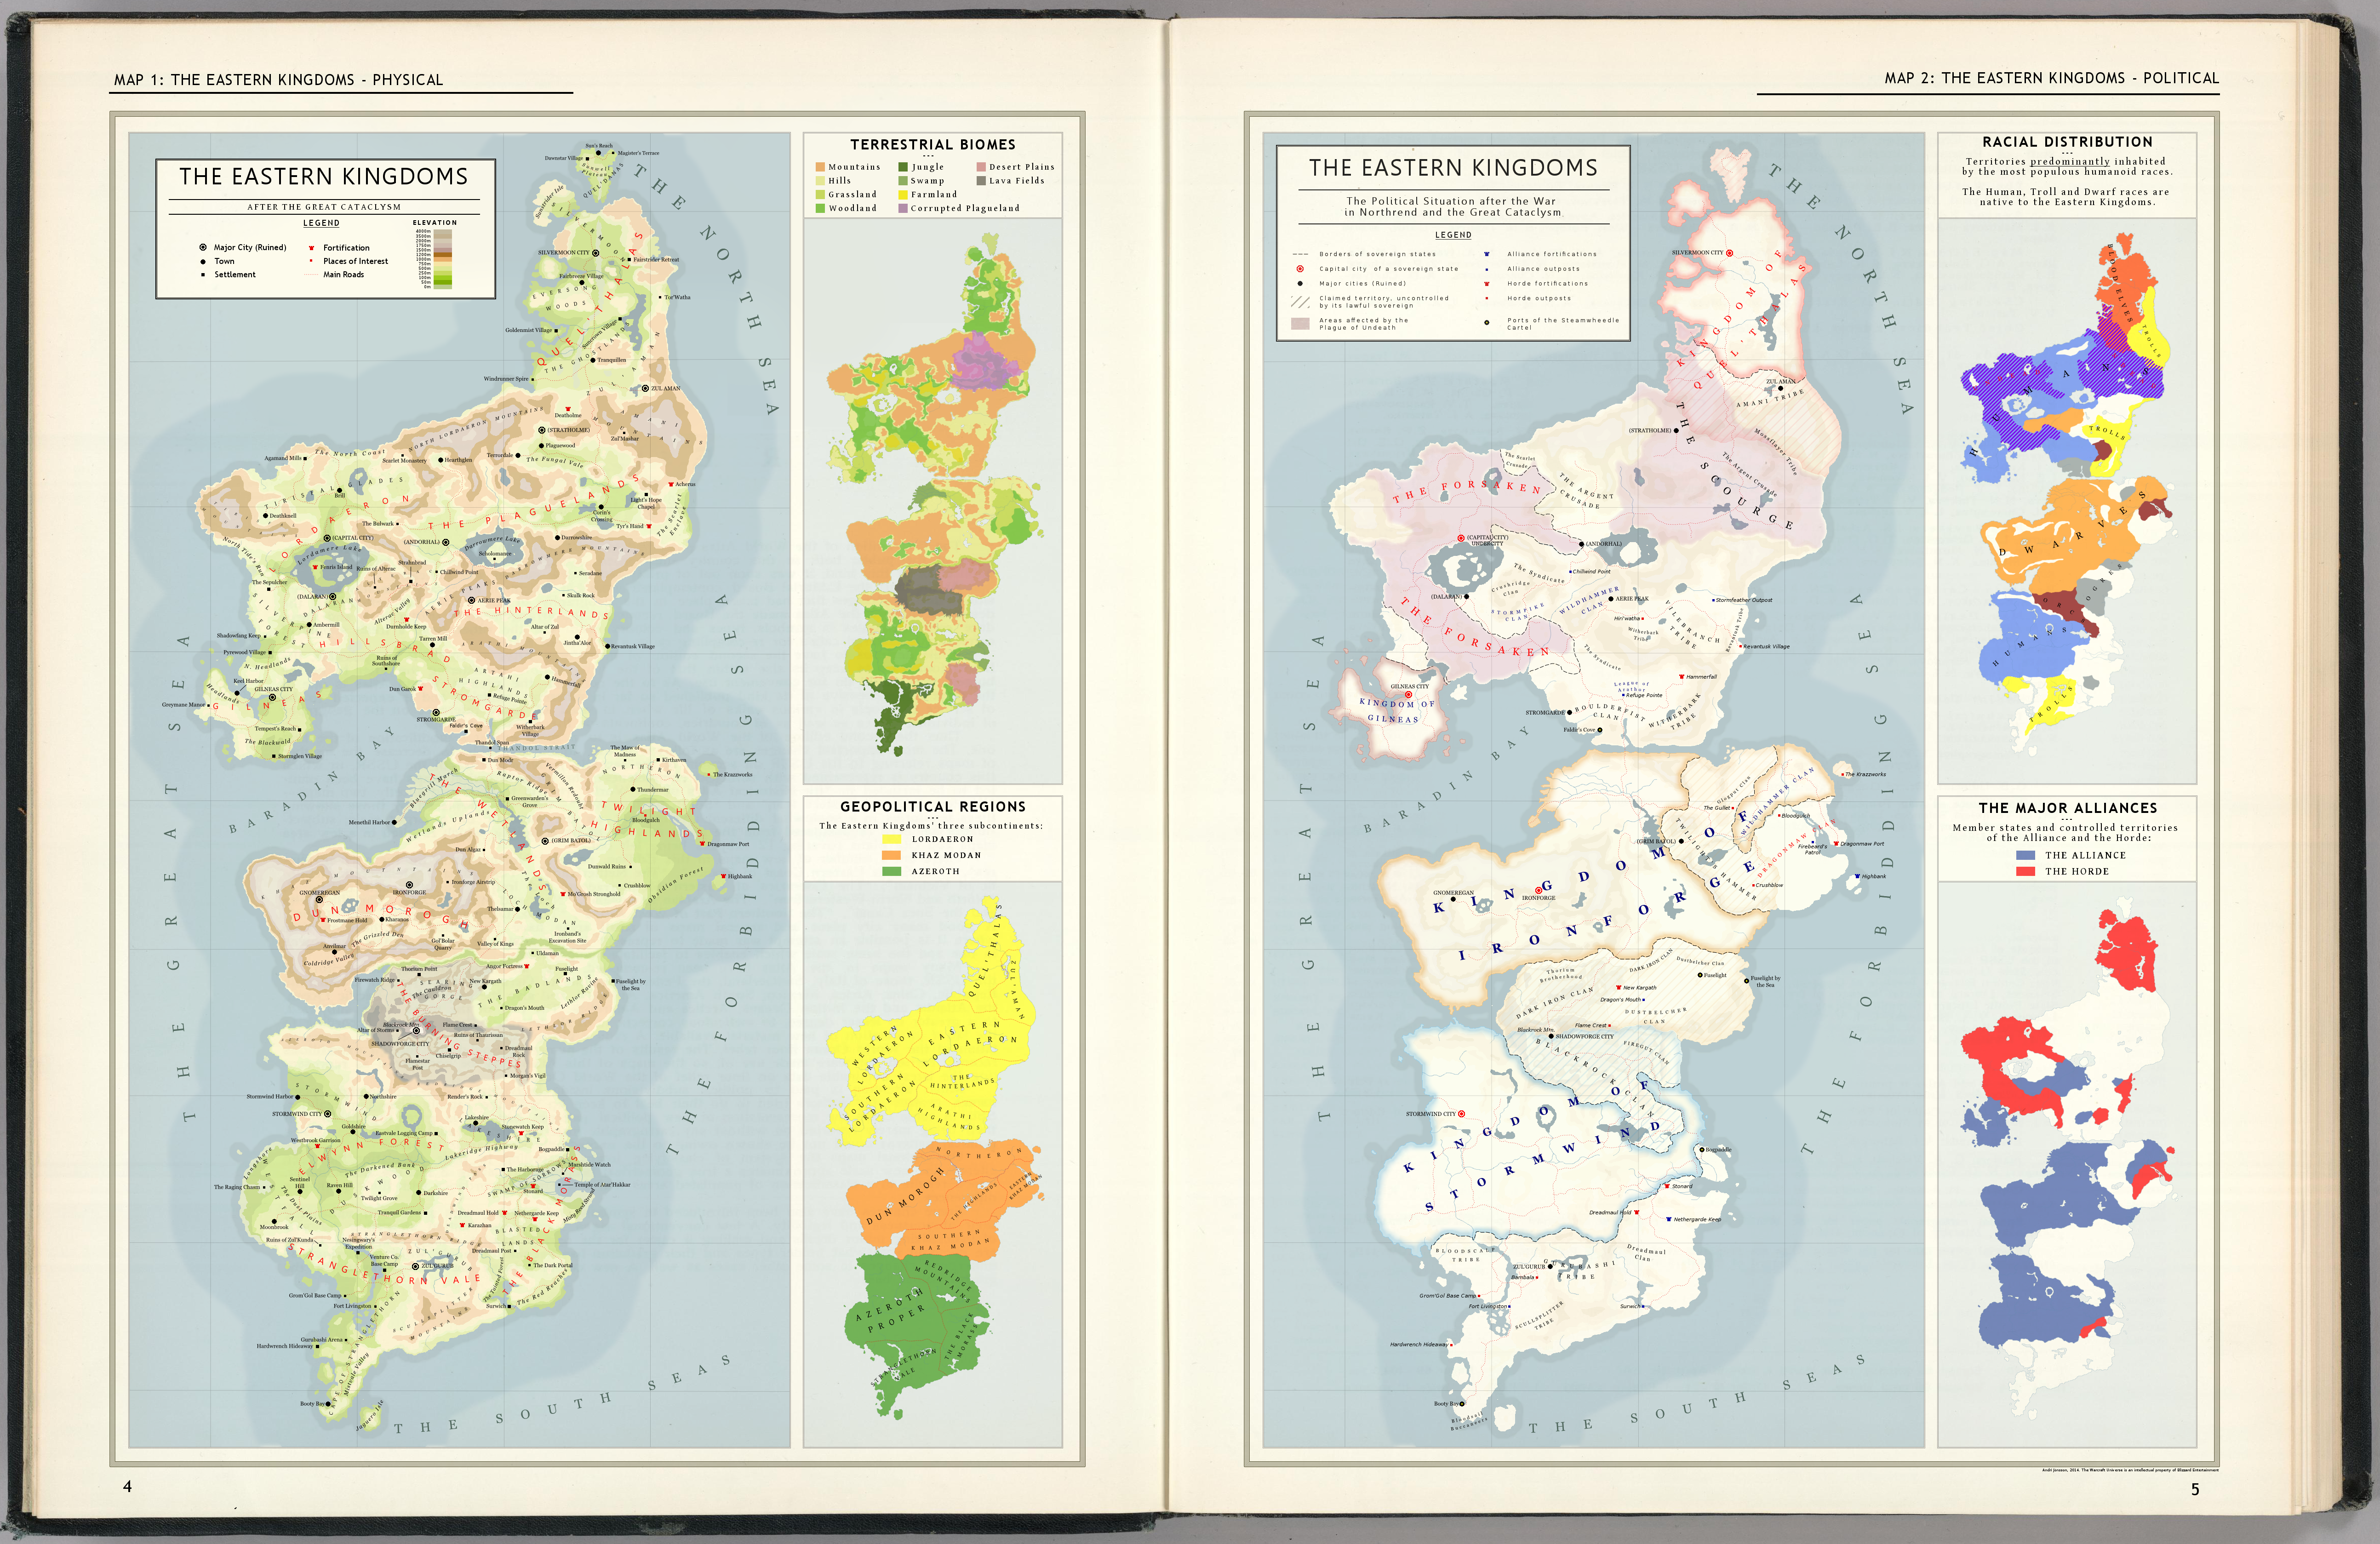 Eastern kingdom maps from the atlas by kuusinen on deviantart eastern kingdom maps from the atlas by kuusinen gumiabroncs Gallery